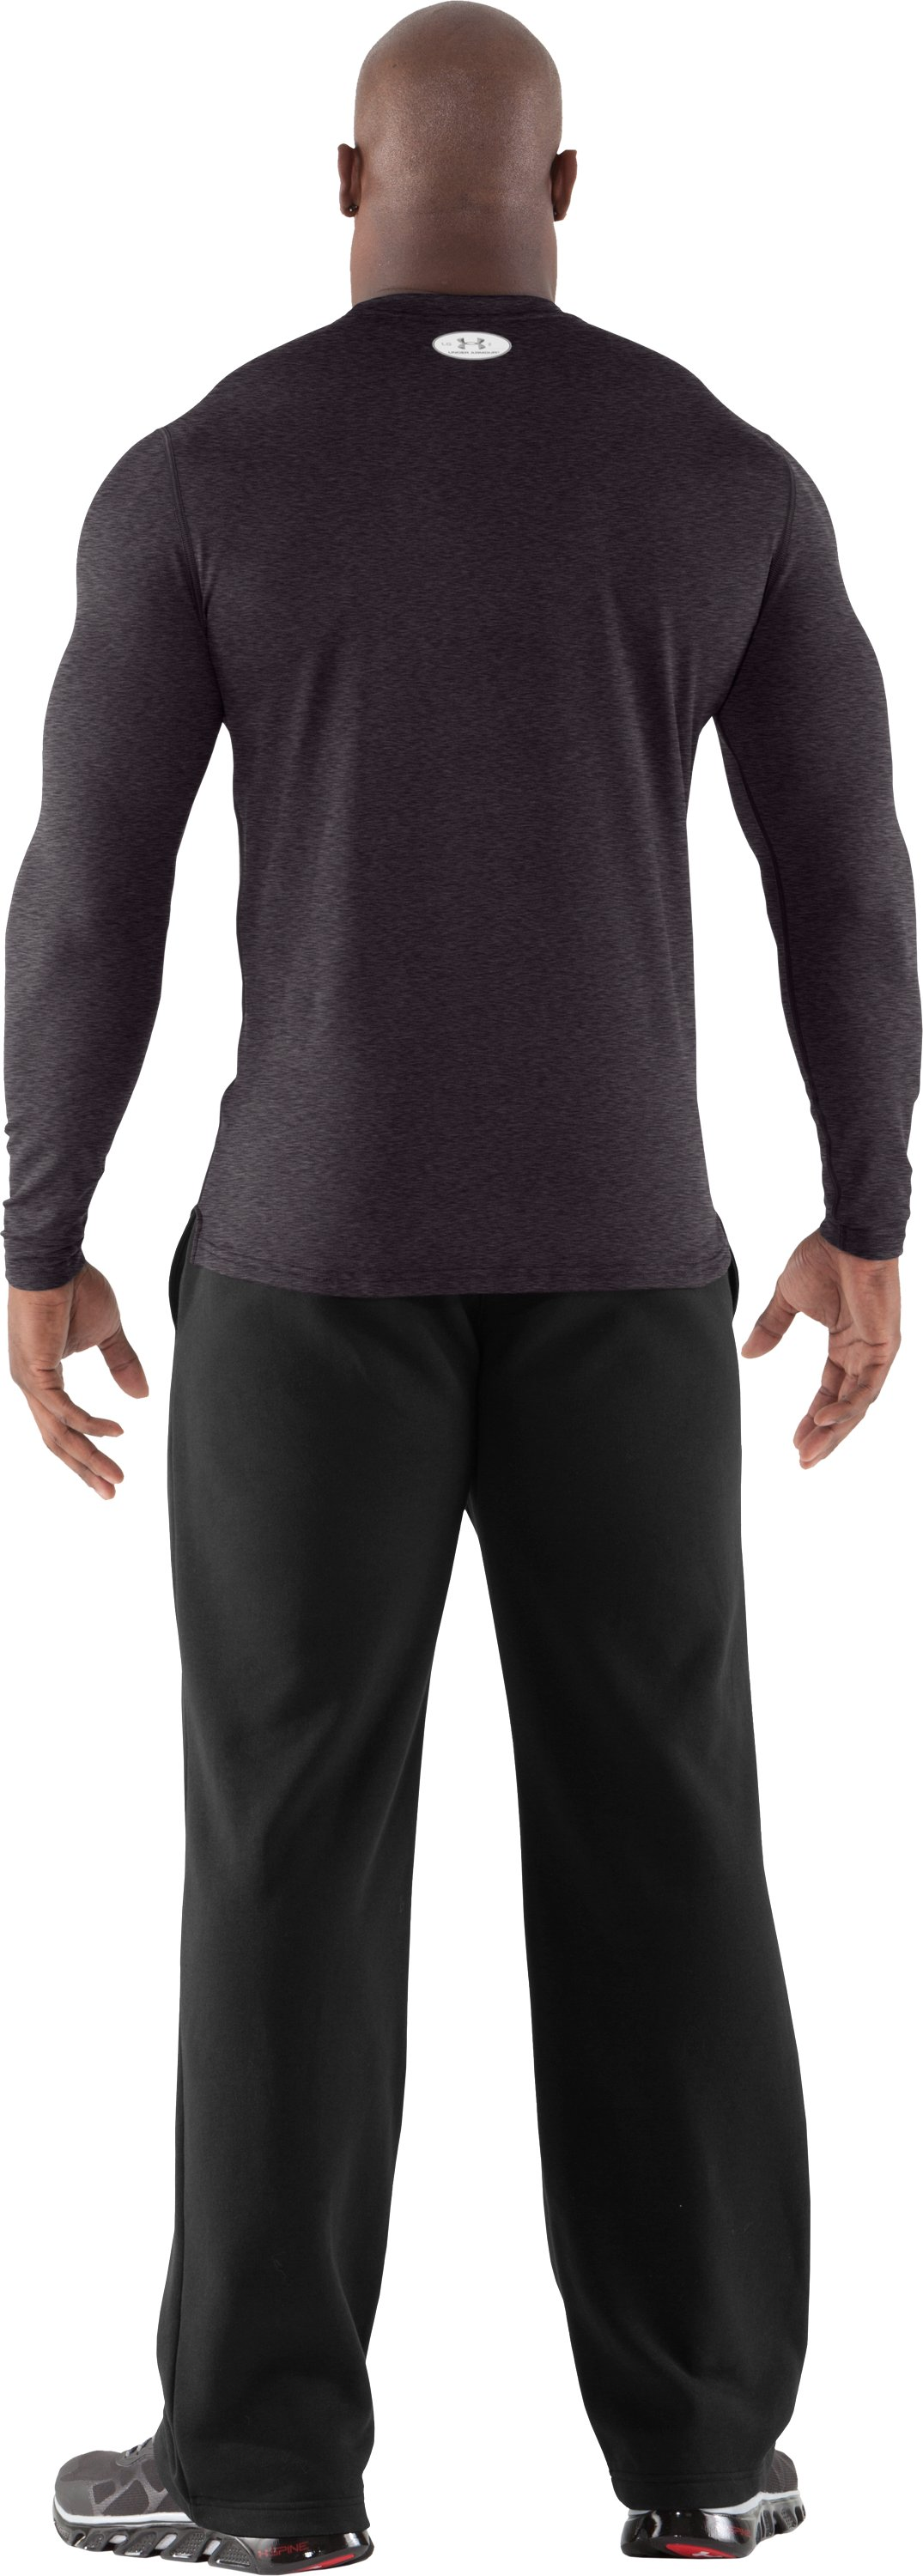 Men's ColdGear® Fitted Long Sleeve Crew, Carbon Heather, Back